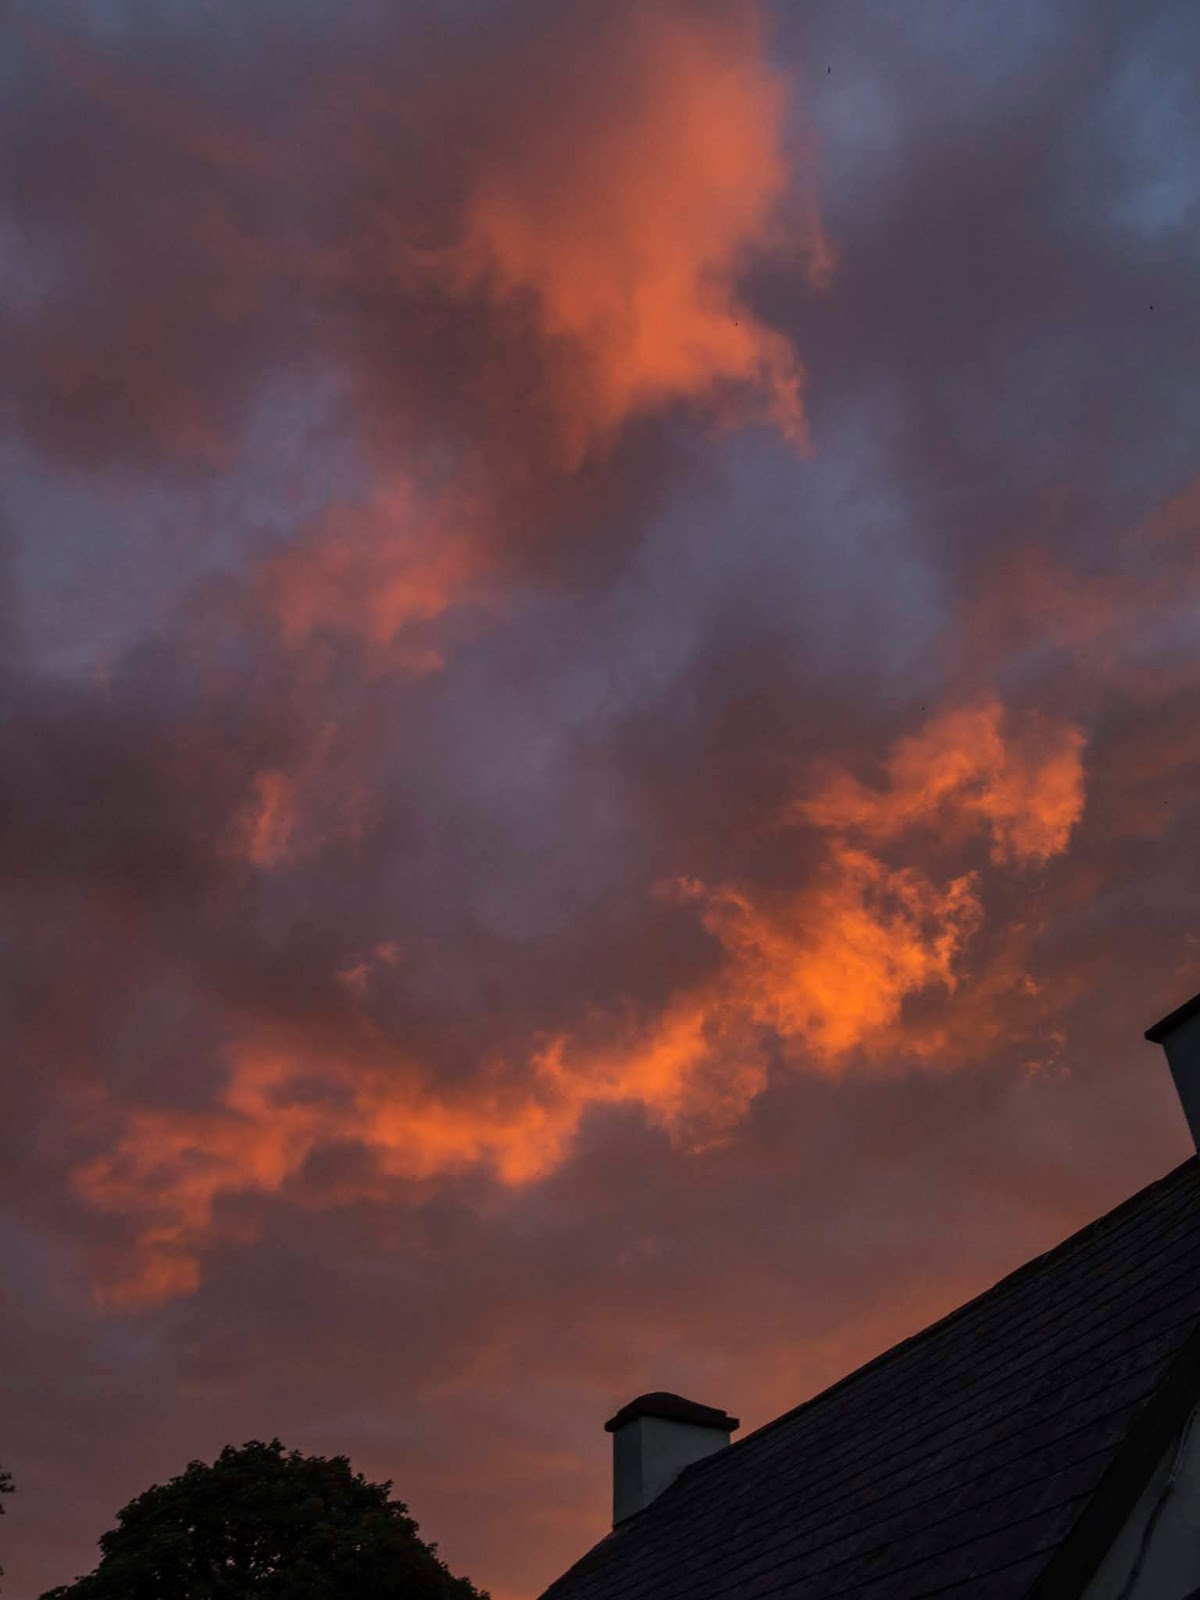 Bright sunset clouds over the roof of a house and a Maple tree top.